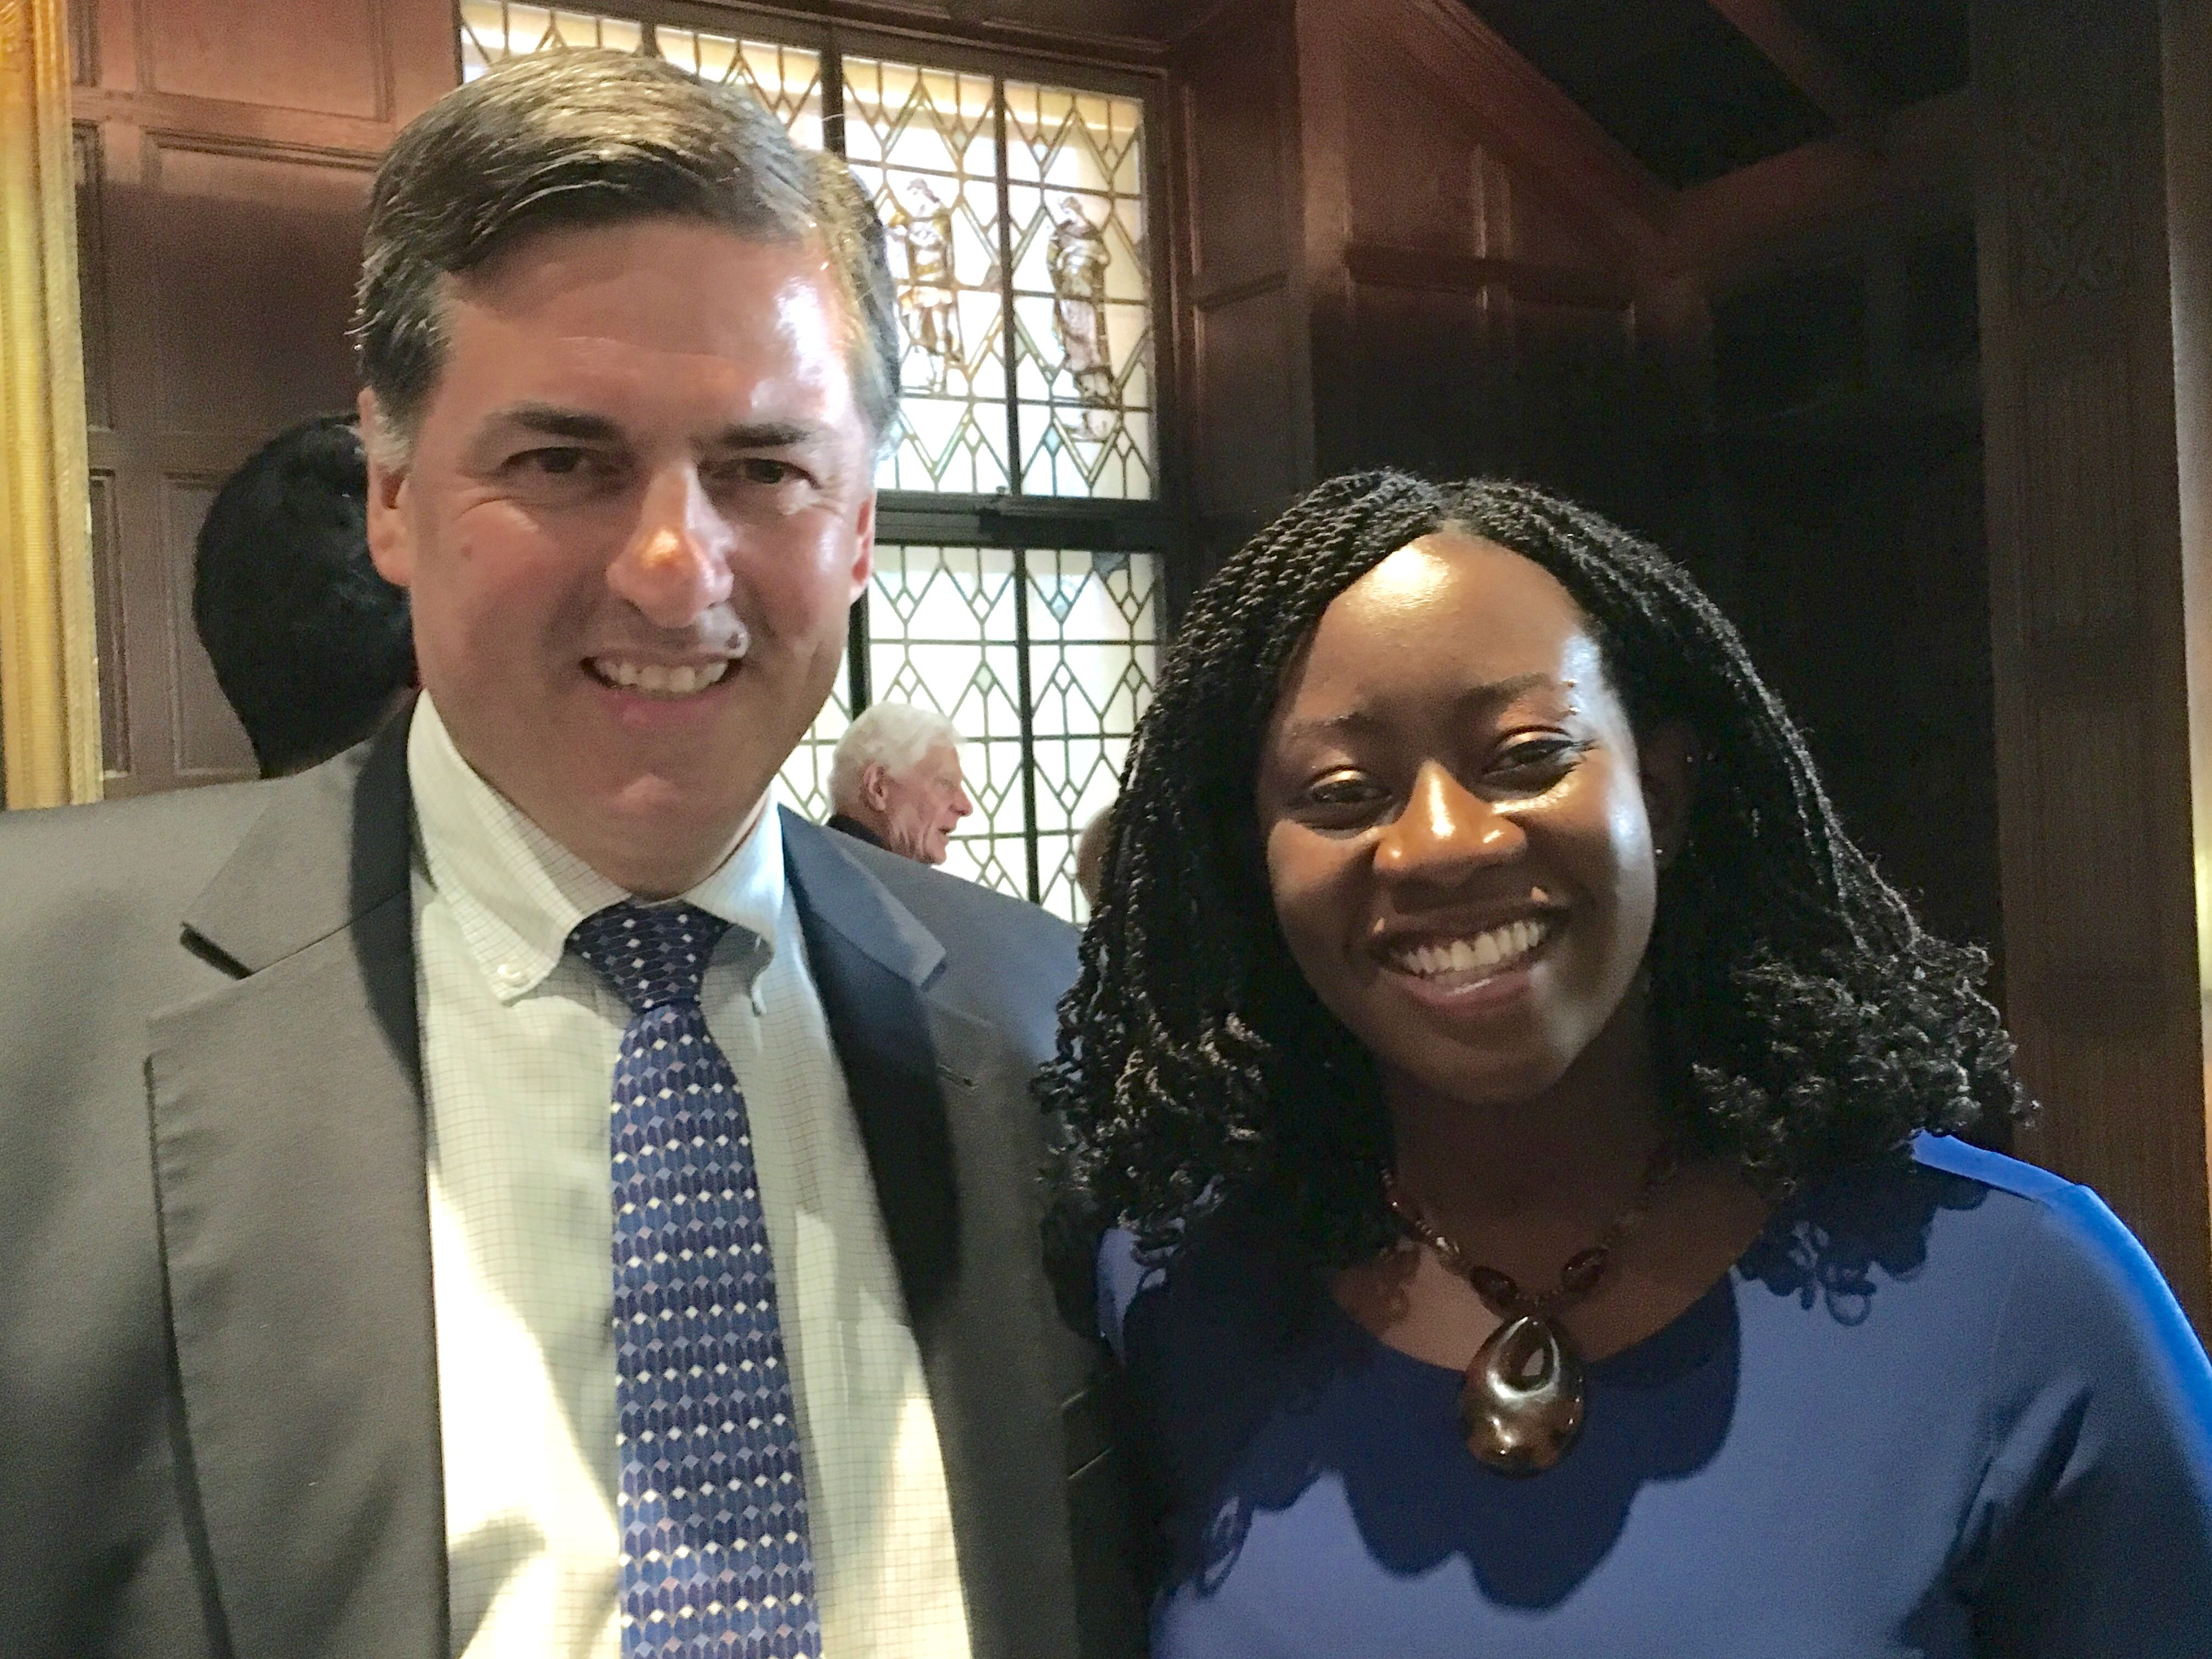 Sergio Troncoso and Julie Iromuanya (author of Mr. and Mrs. Doctor) at the Folger Shakespeare Library for the 2016 PEN/Faulkner Award for Fiction.